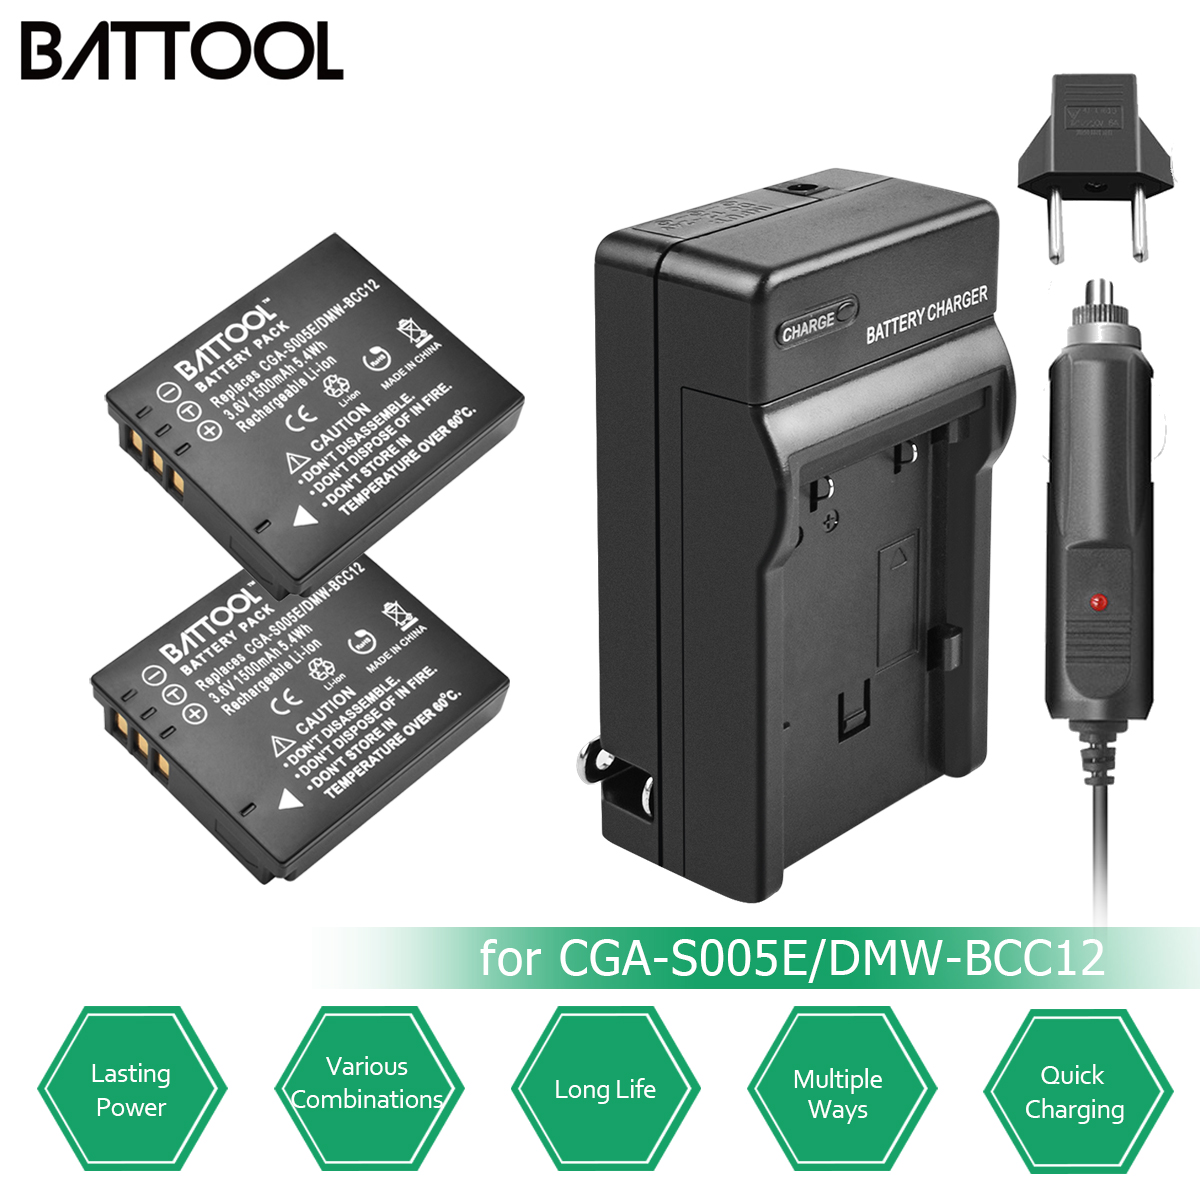 2pc CGA-S005E S005 Rechargeable Battery+Charger Kit for Panasonic <font><b>Lumix</b></font> DMC-LX1 LX2 <font><b>LX3</b></font> DMW-BCC12 For FUJI NP-70 DB60 DLI106 L20 image